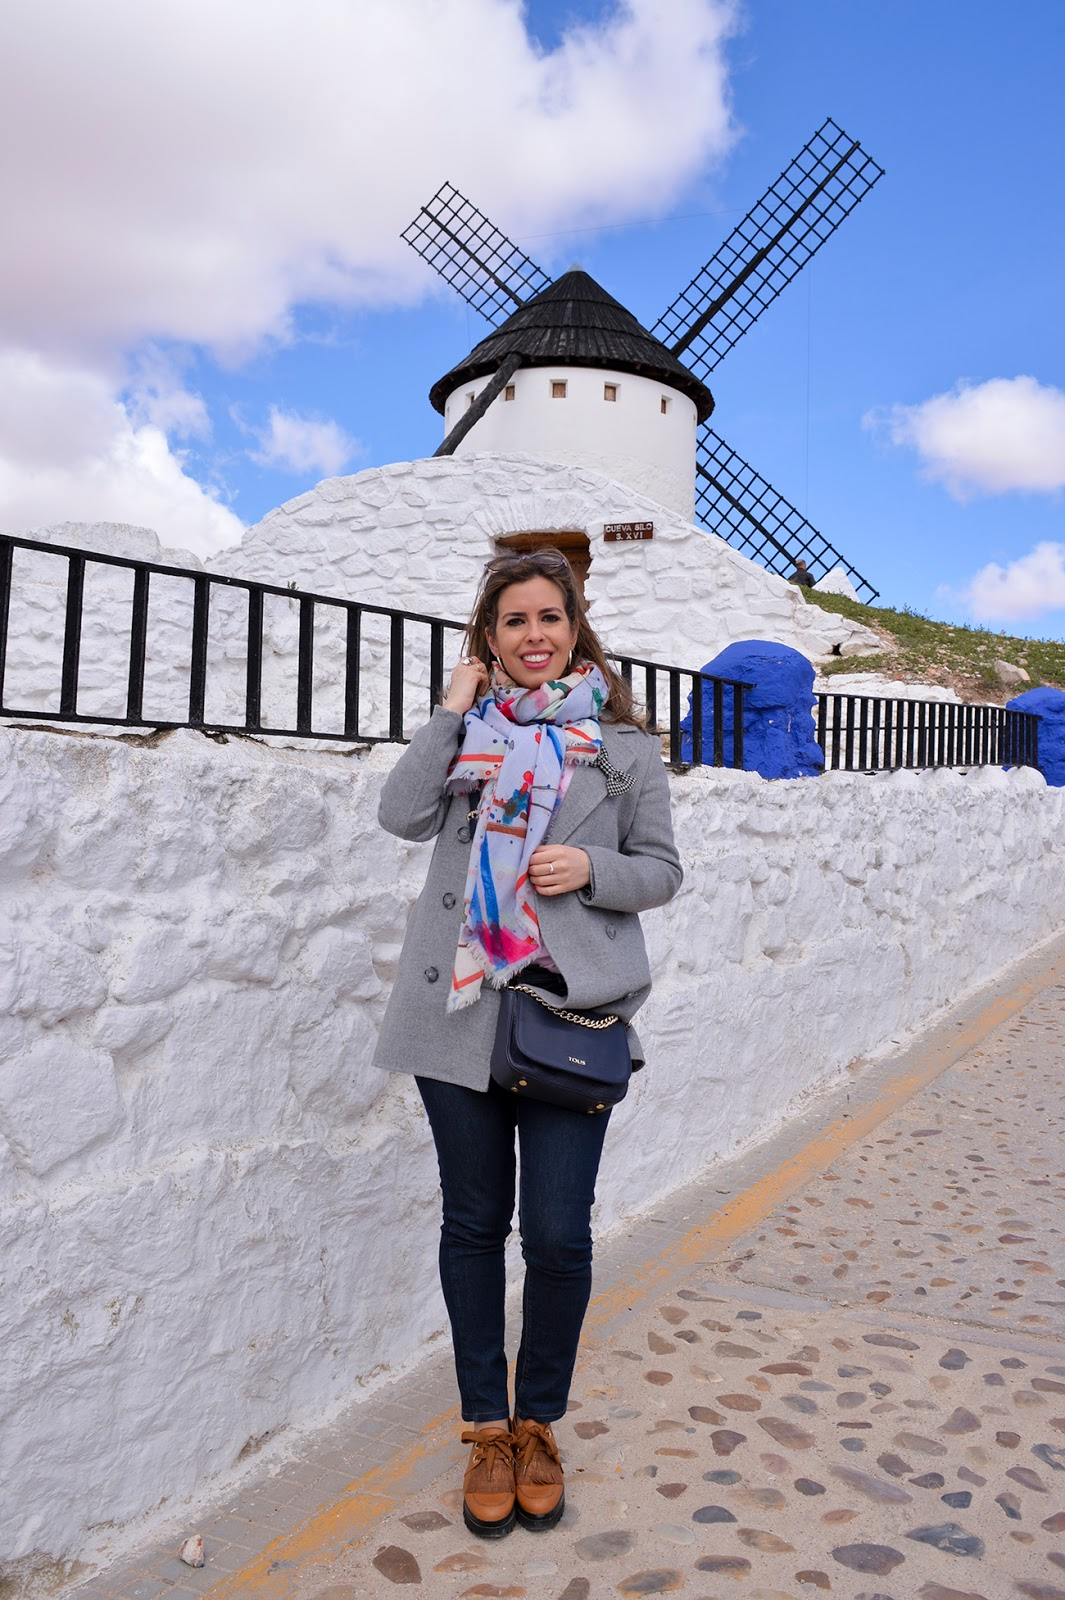 instagram worthy spots places spain instagrammable windmill campo criptana